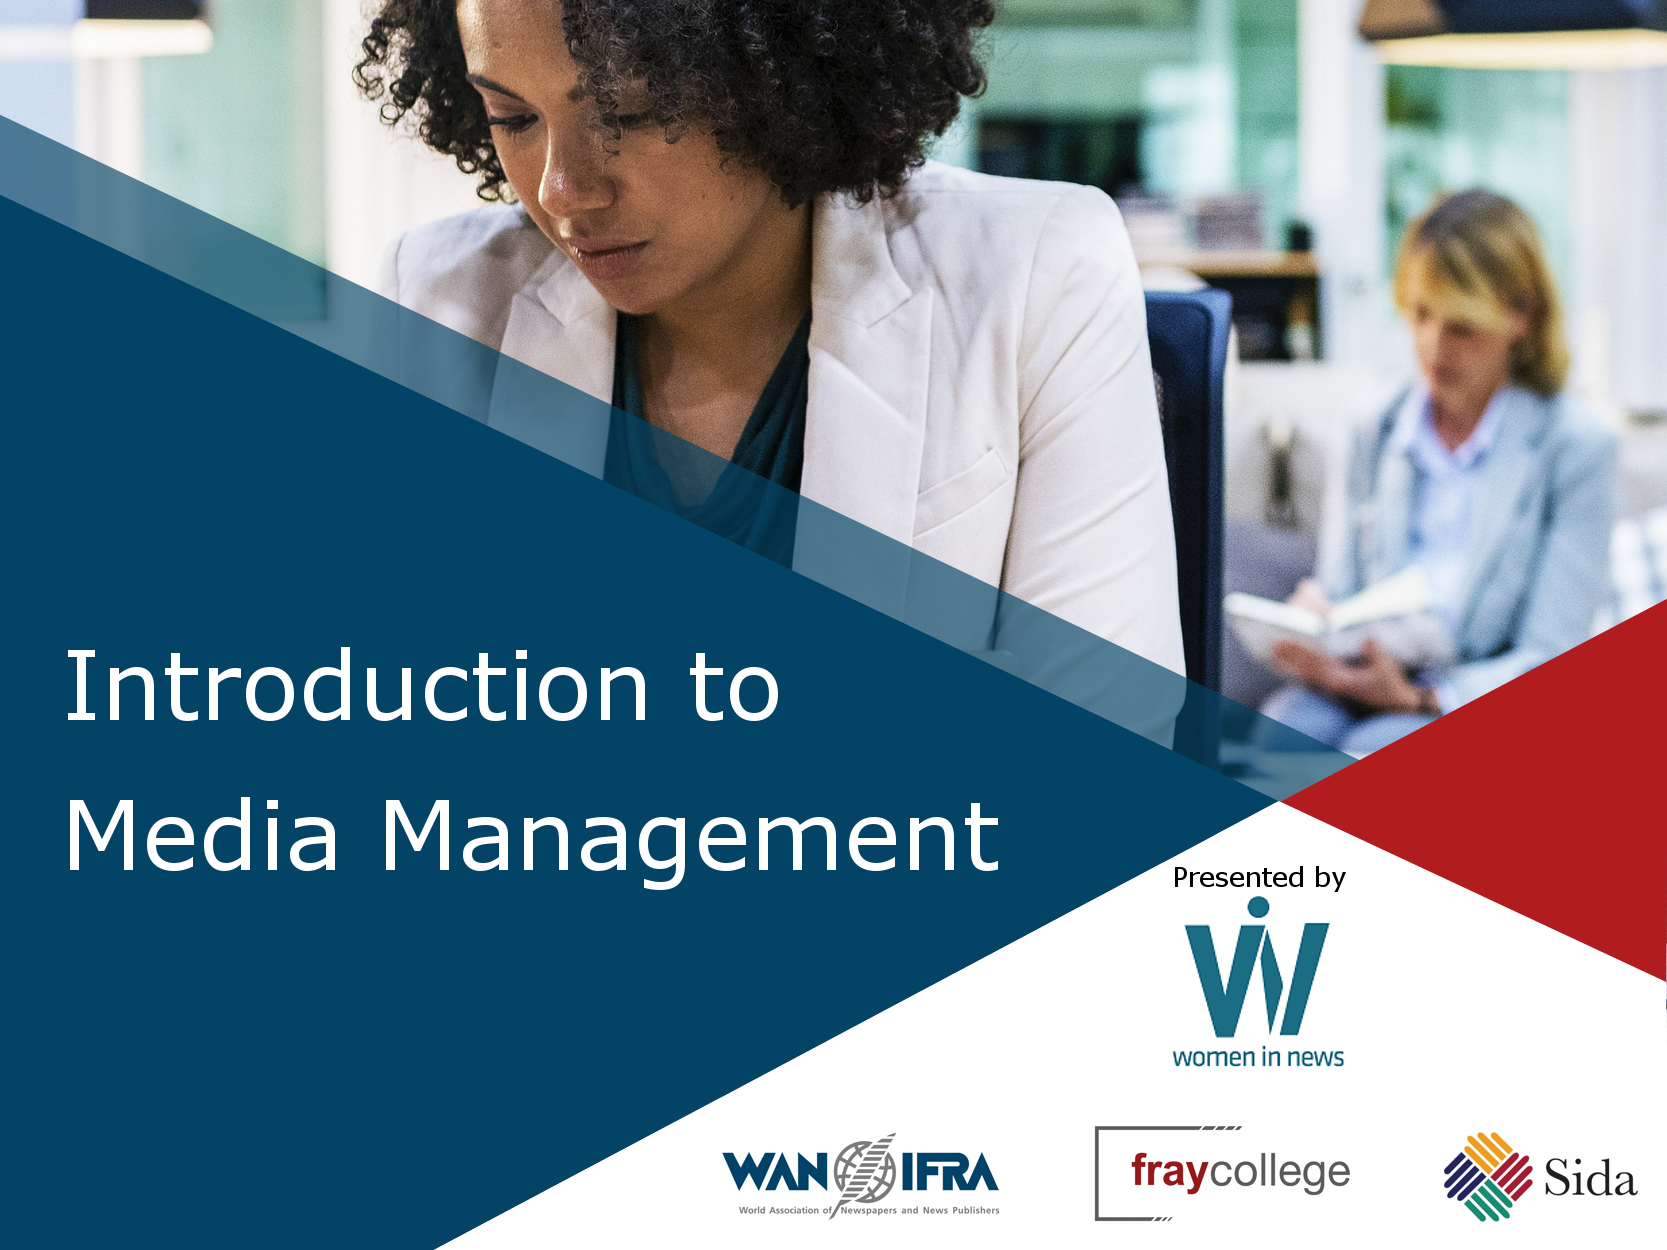 Introduction to Media Management